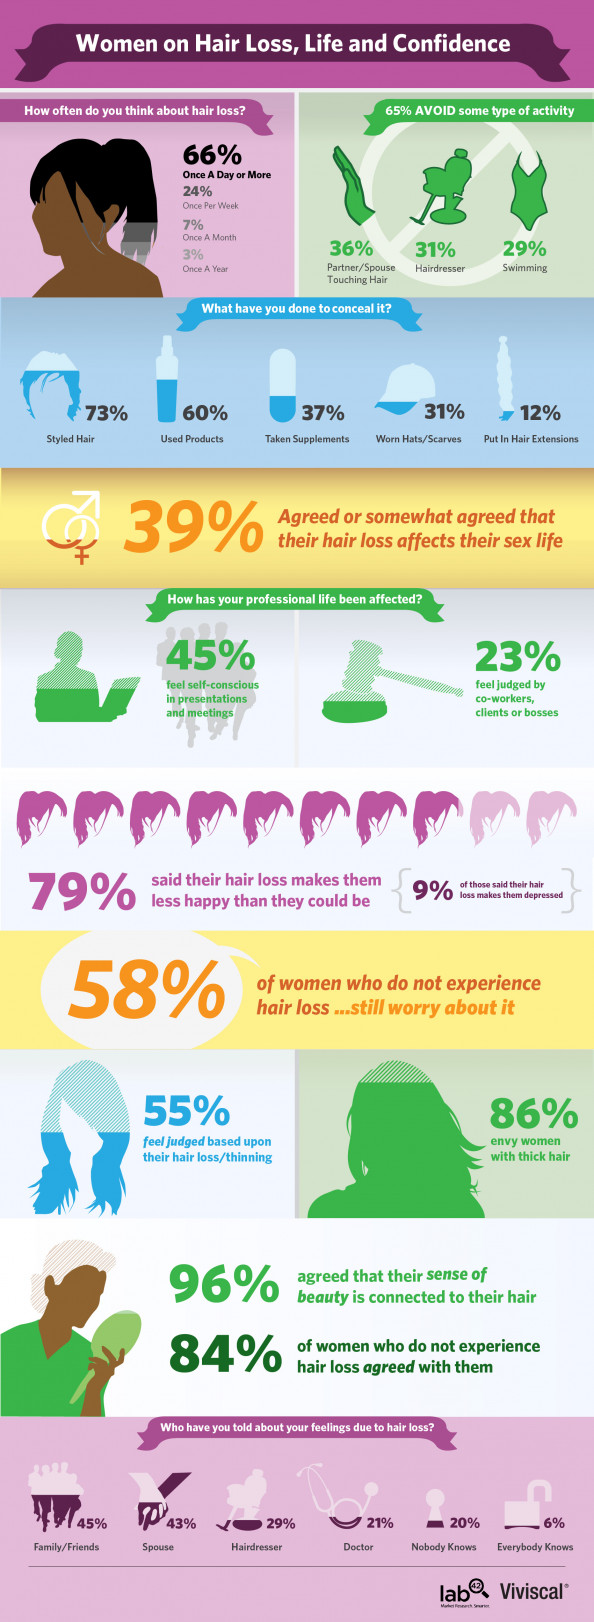 Viviscal Hair Loss in Women Survey Infographic